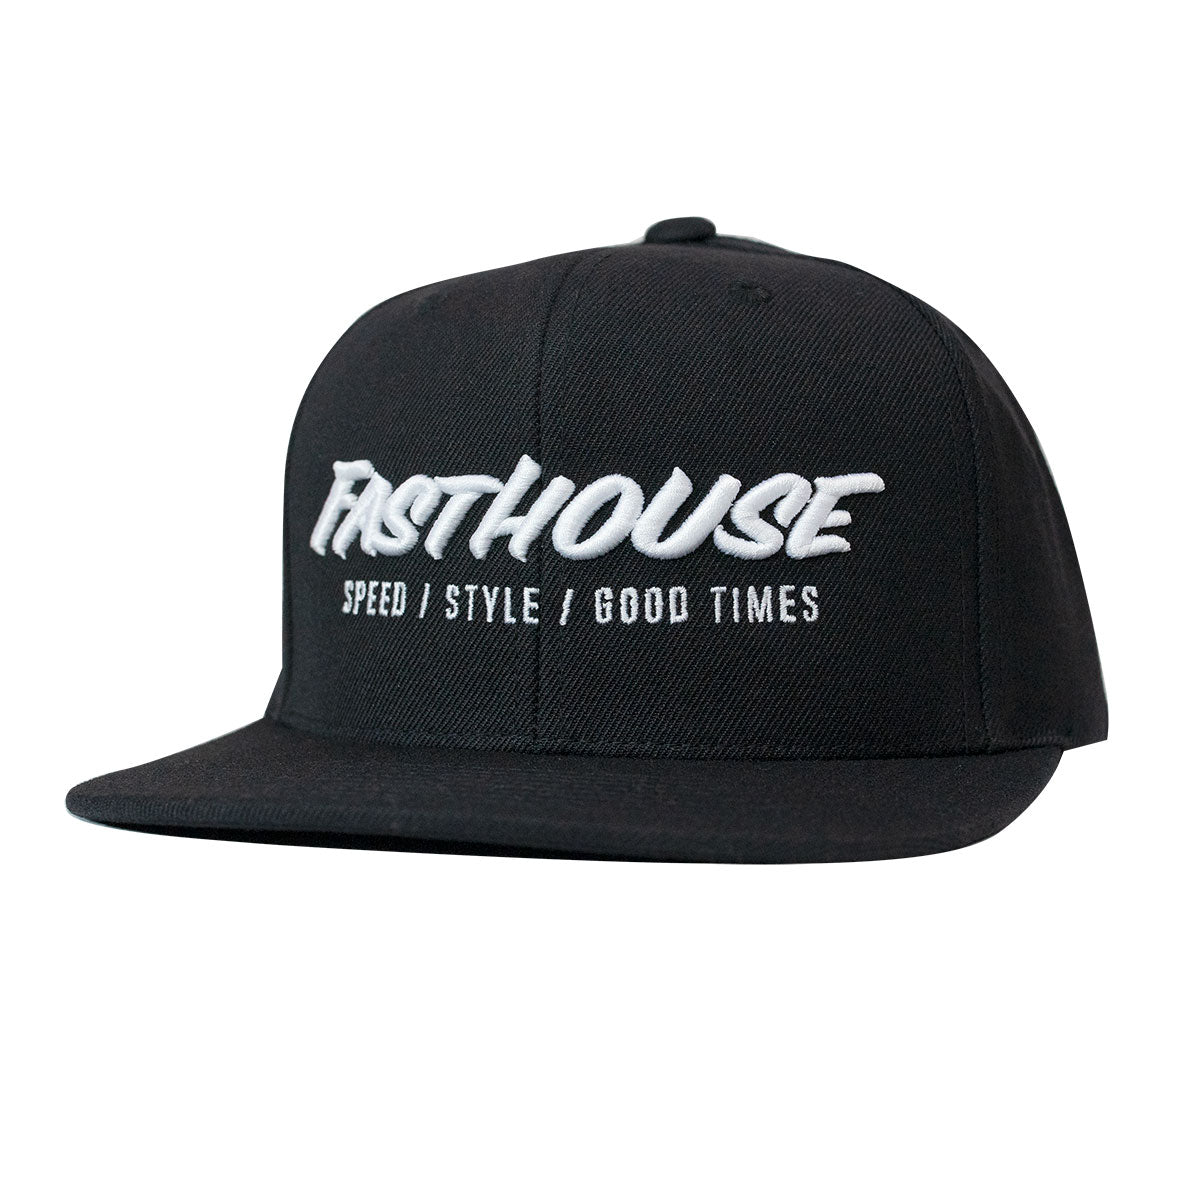 Fasthouse Classic Hat - Black